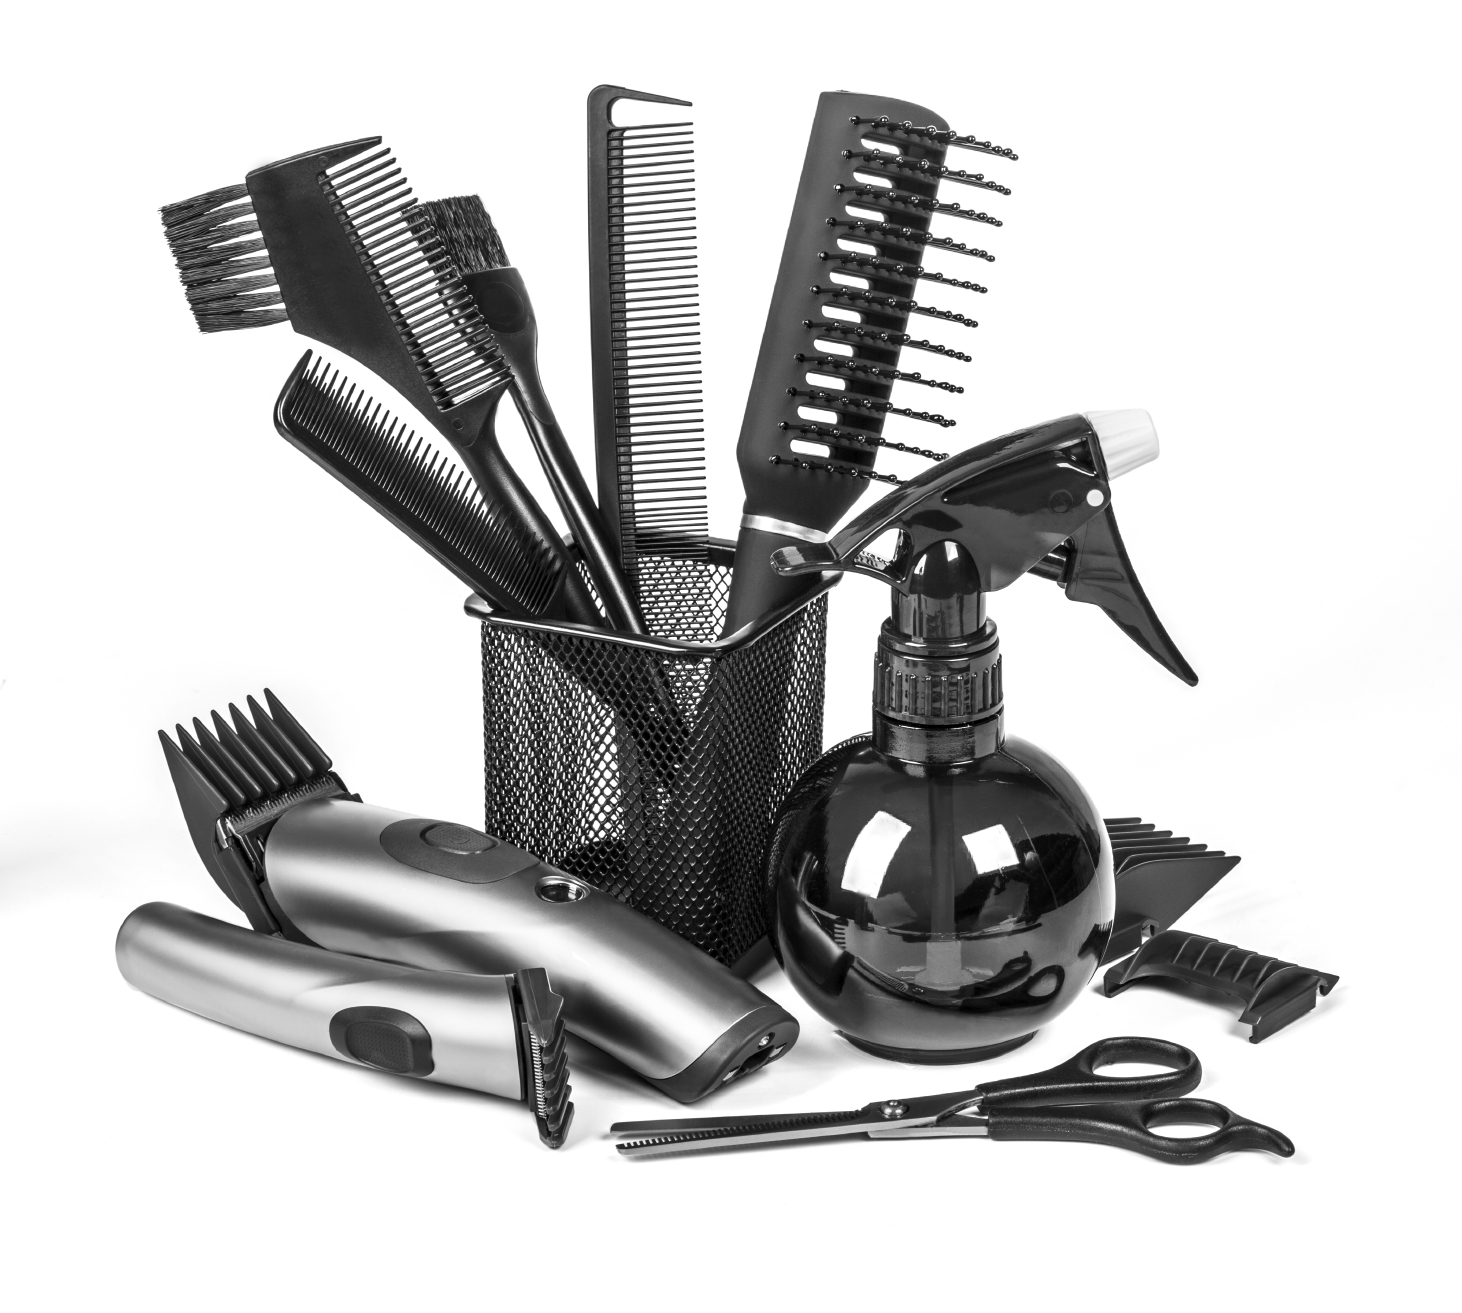 Salon De Coiffure équipement How To Properly Clean And Sanitize Your Cosmetology Tools